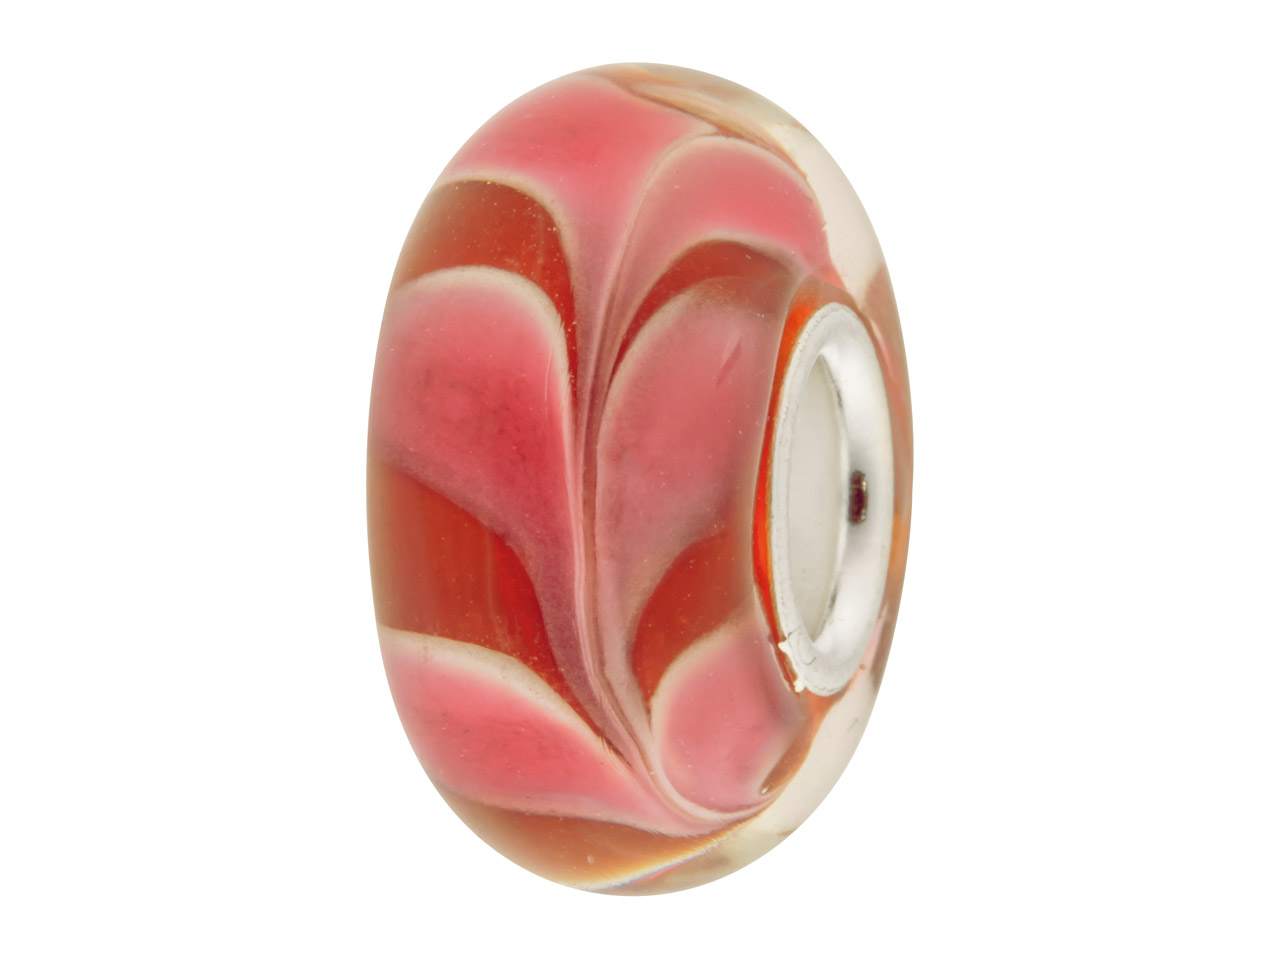 Glass Charm Bead, Red With Pink And White Swirl, Sterling Silver Core